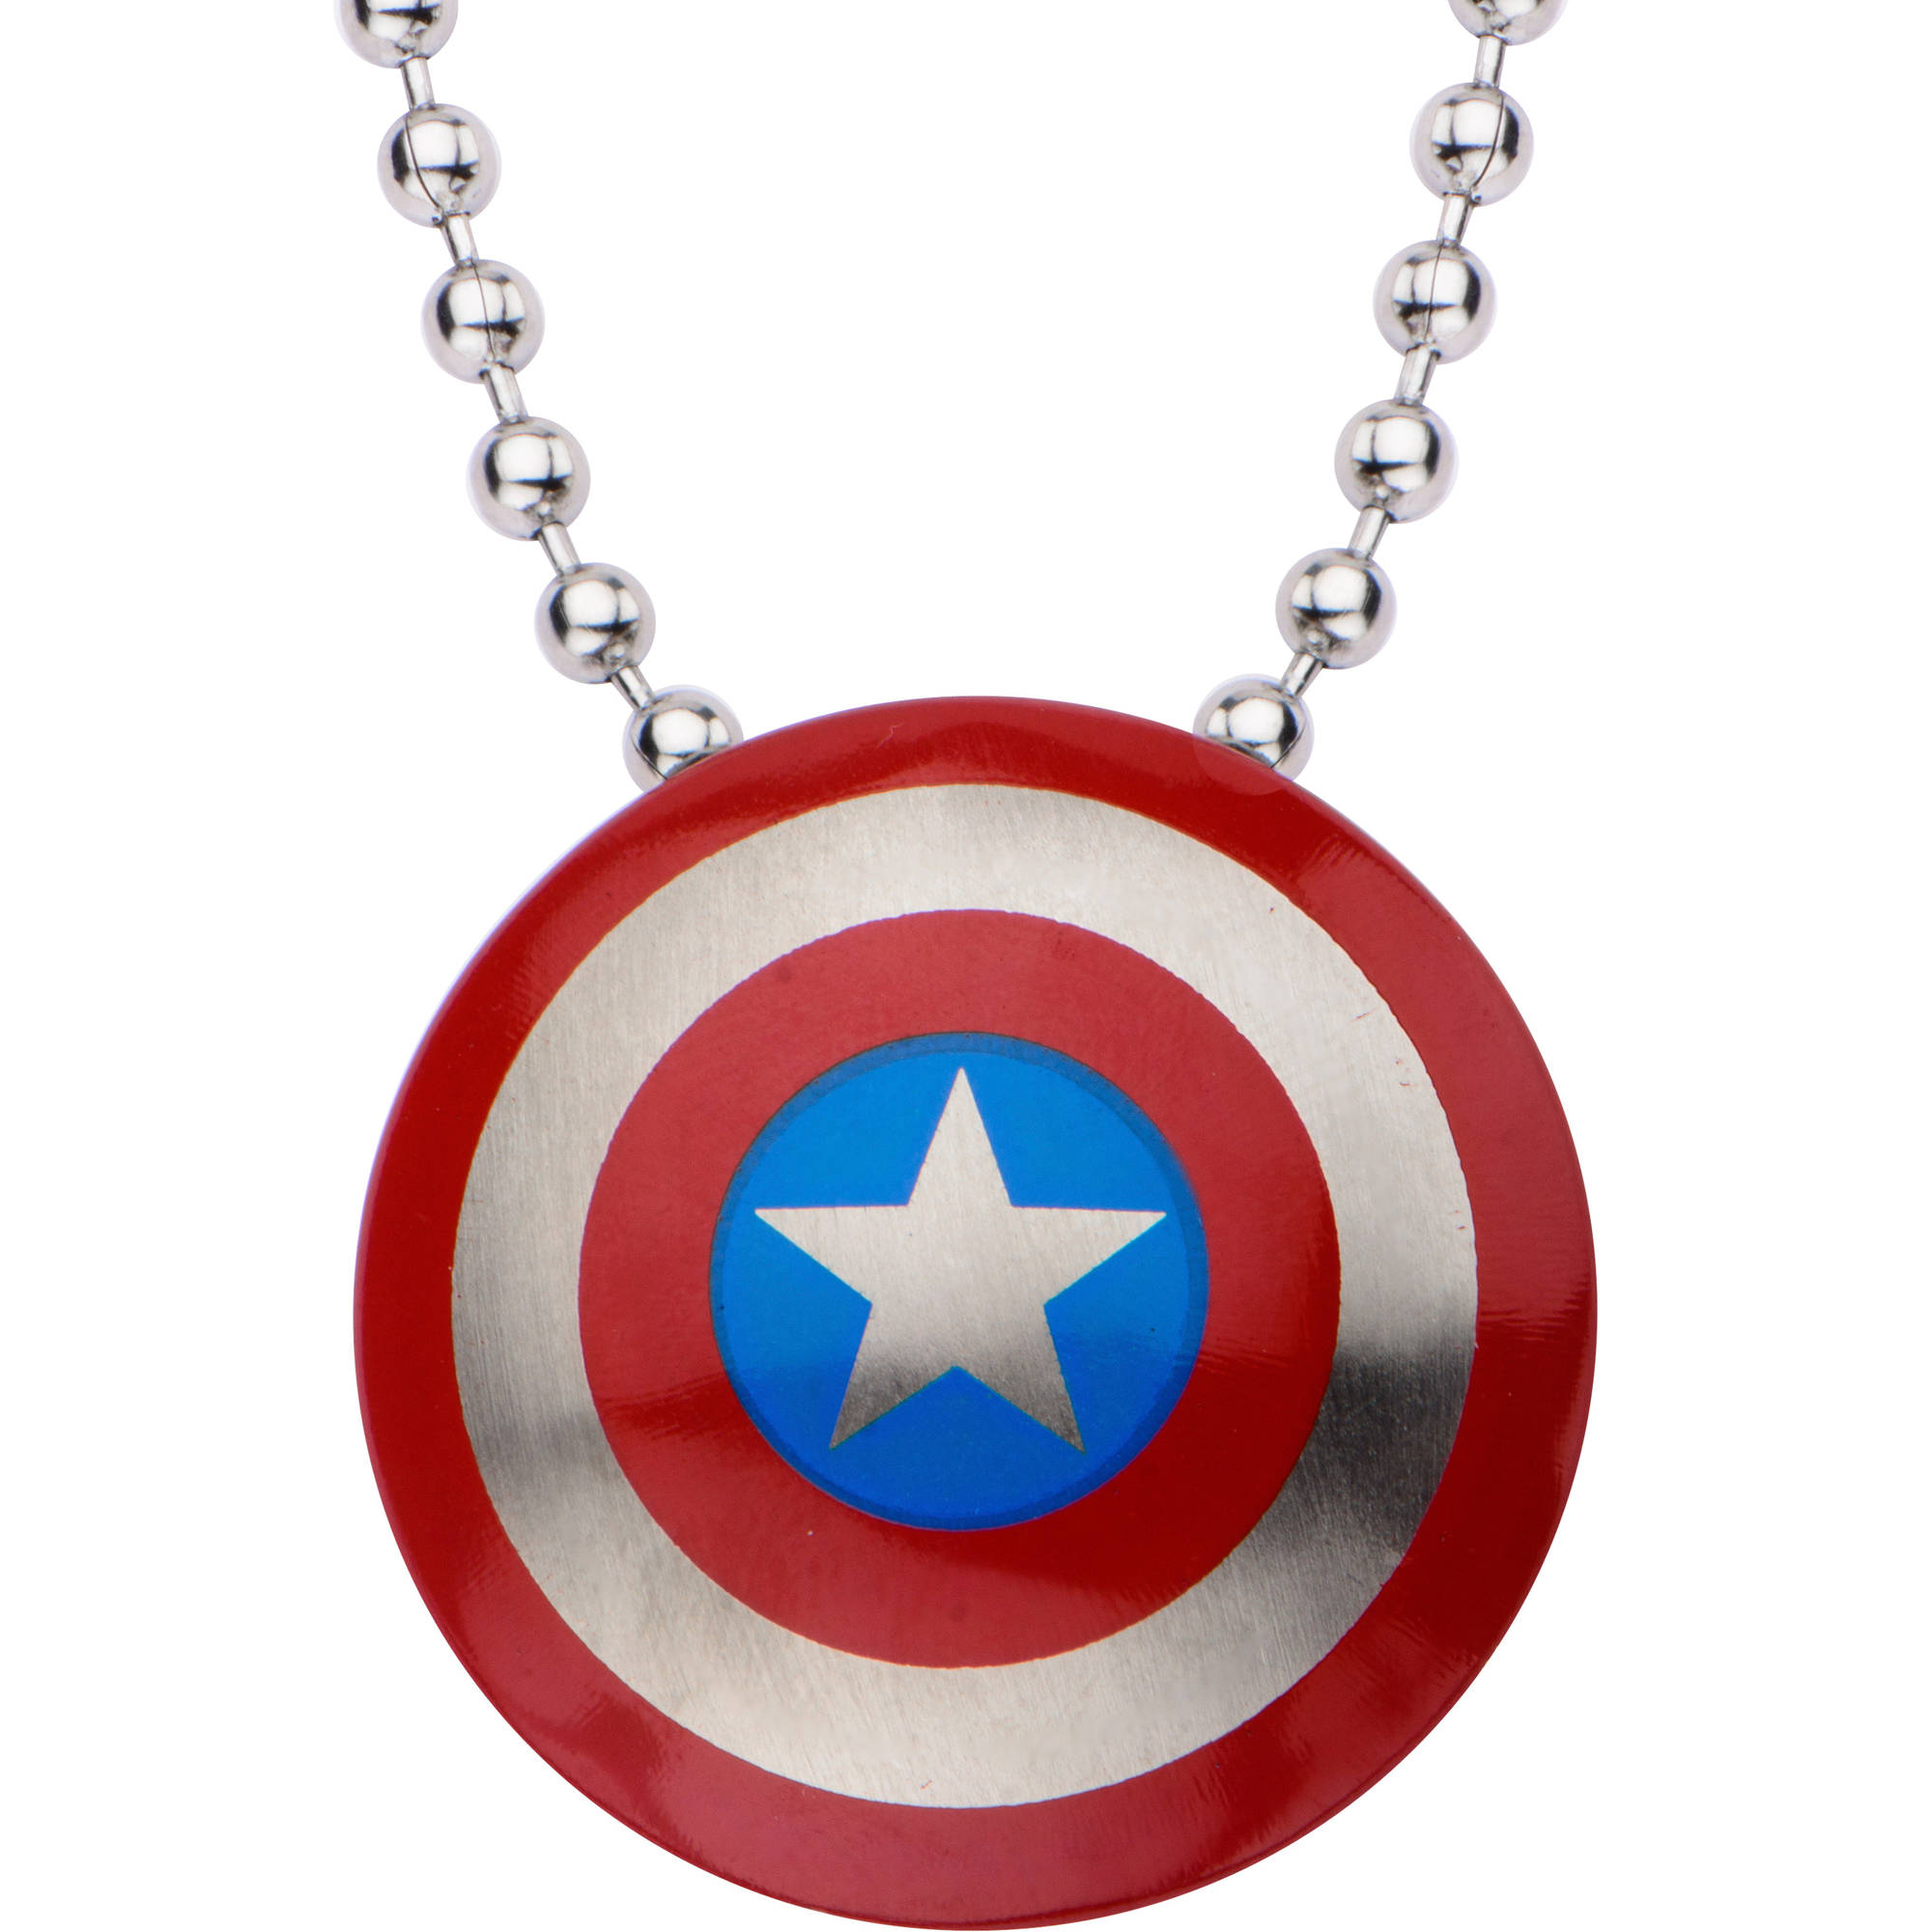 Marvel Stainless Steel Small Captain America Shield Necklace, 22""